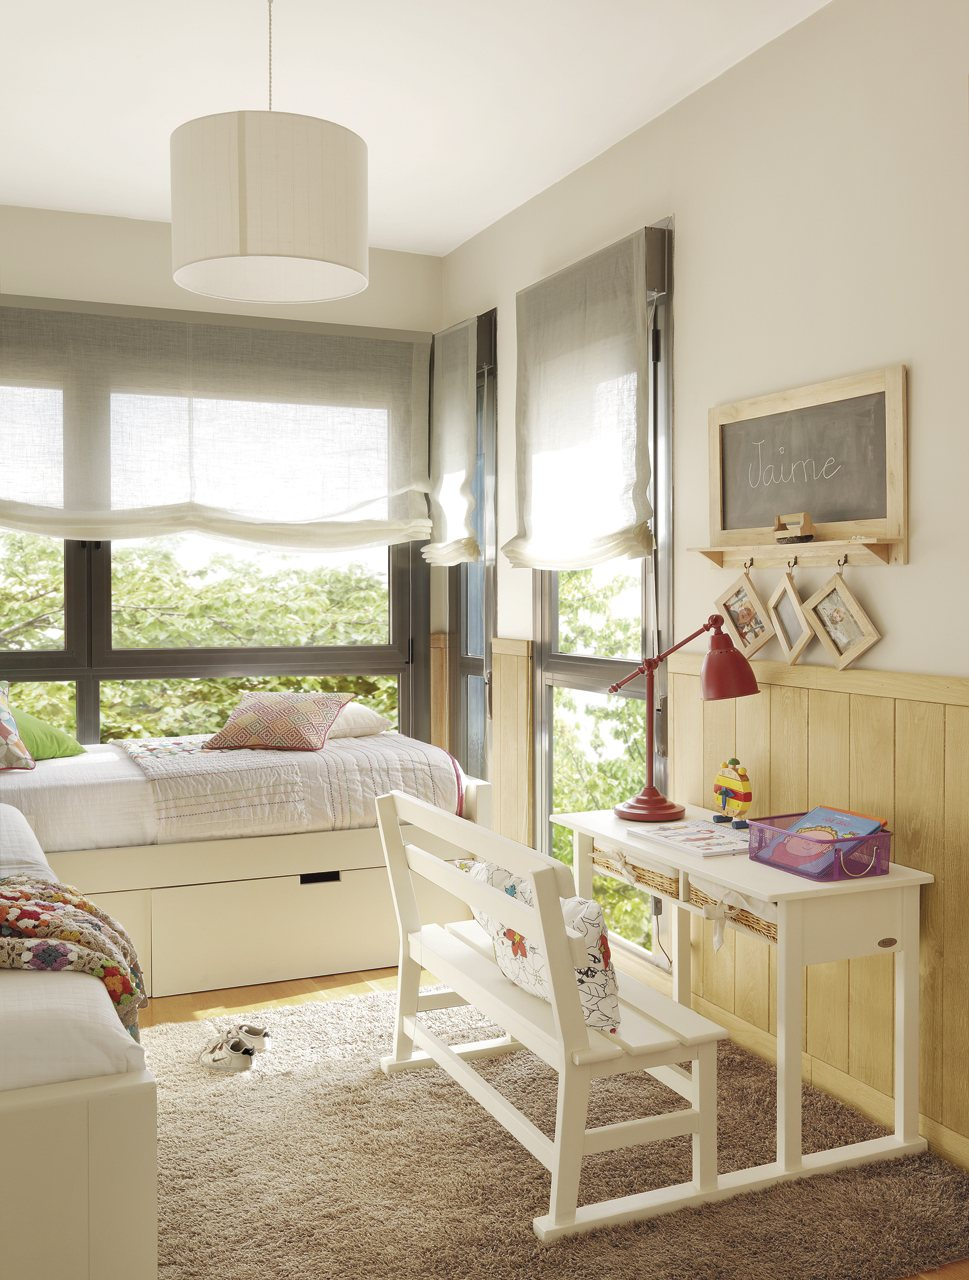 Ideas creativas para decorar un cuarto infantil for Habitacion 3 ninos